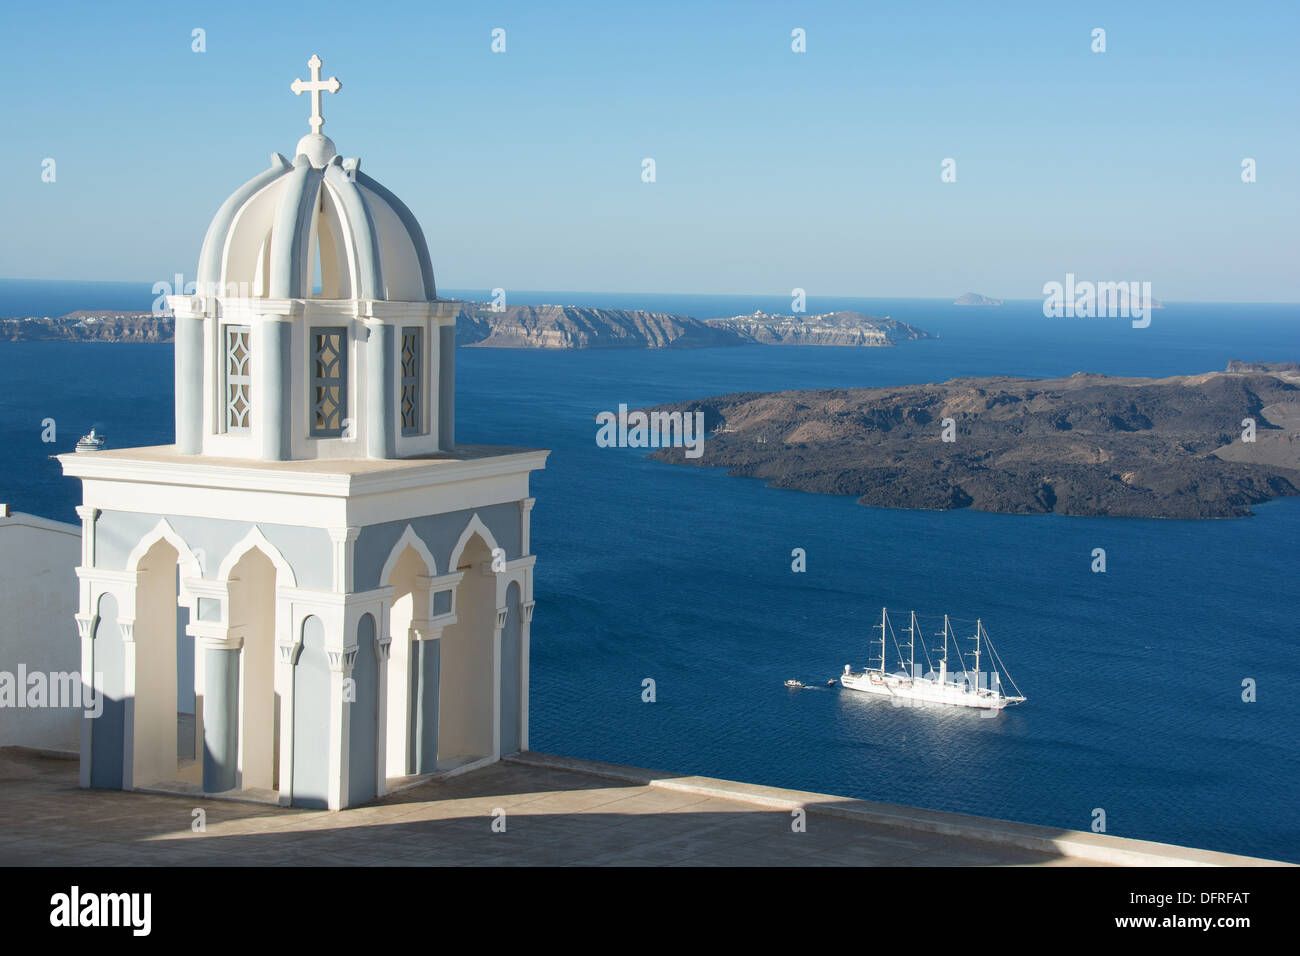 SANTORINI (THIRA), CYCLADES, GREECE. A view from the cliff-top village of Firostephani near Fira. 2013. - Stock Image